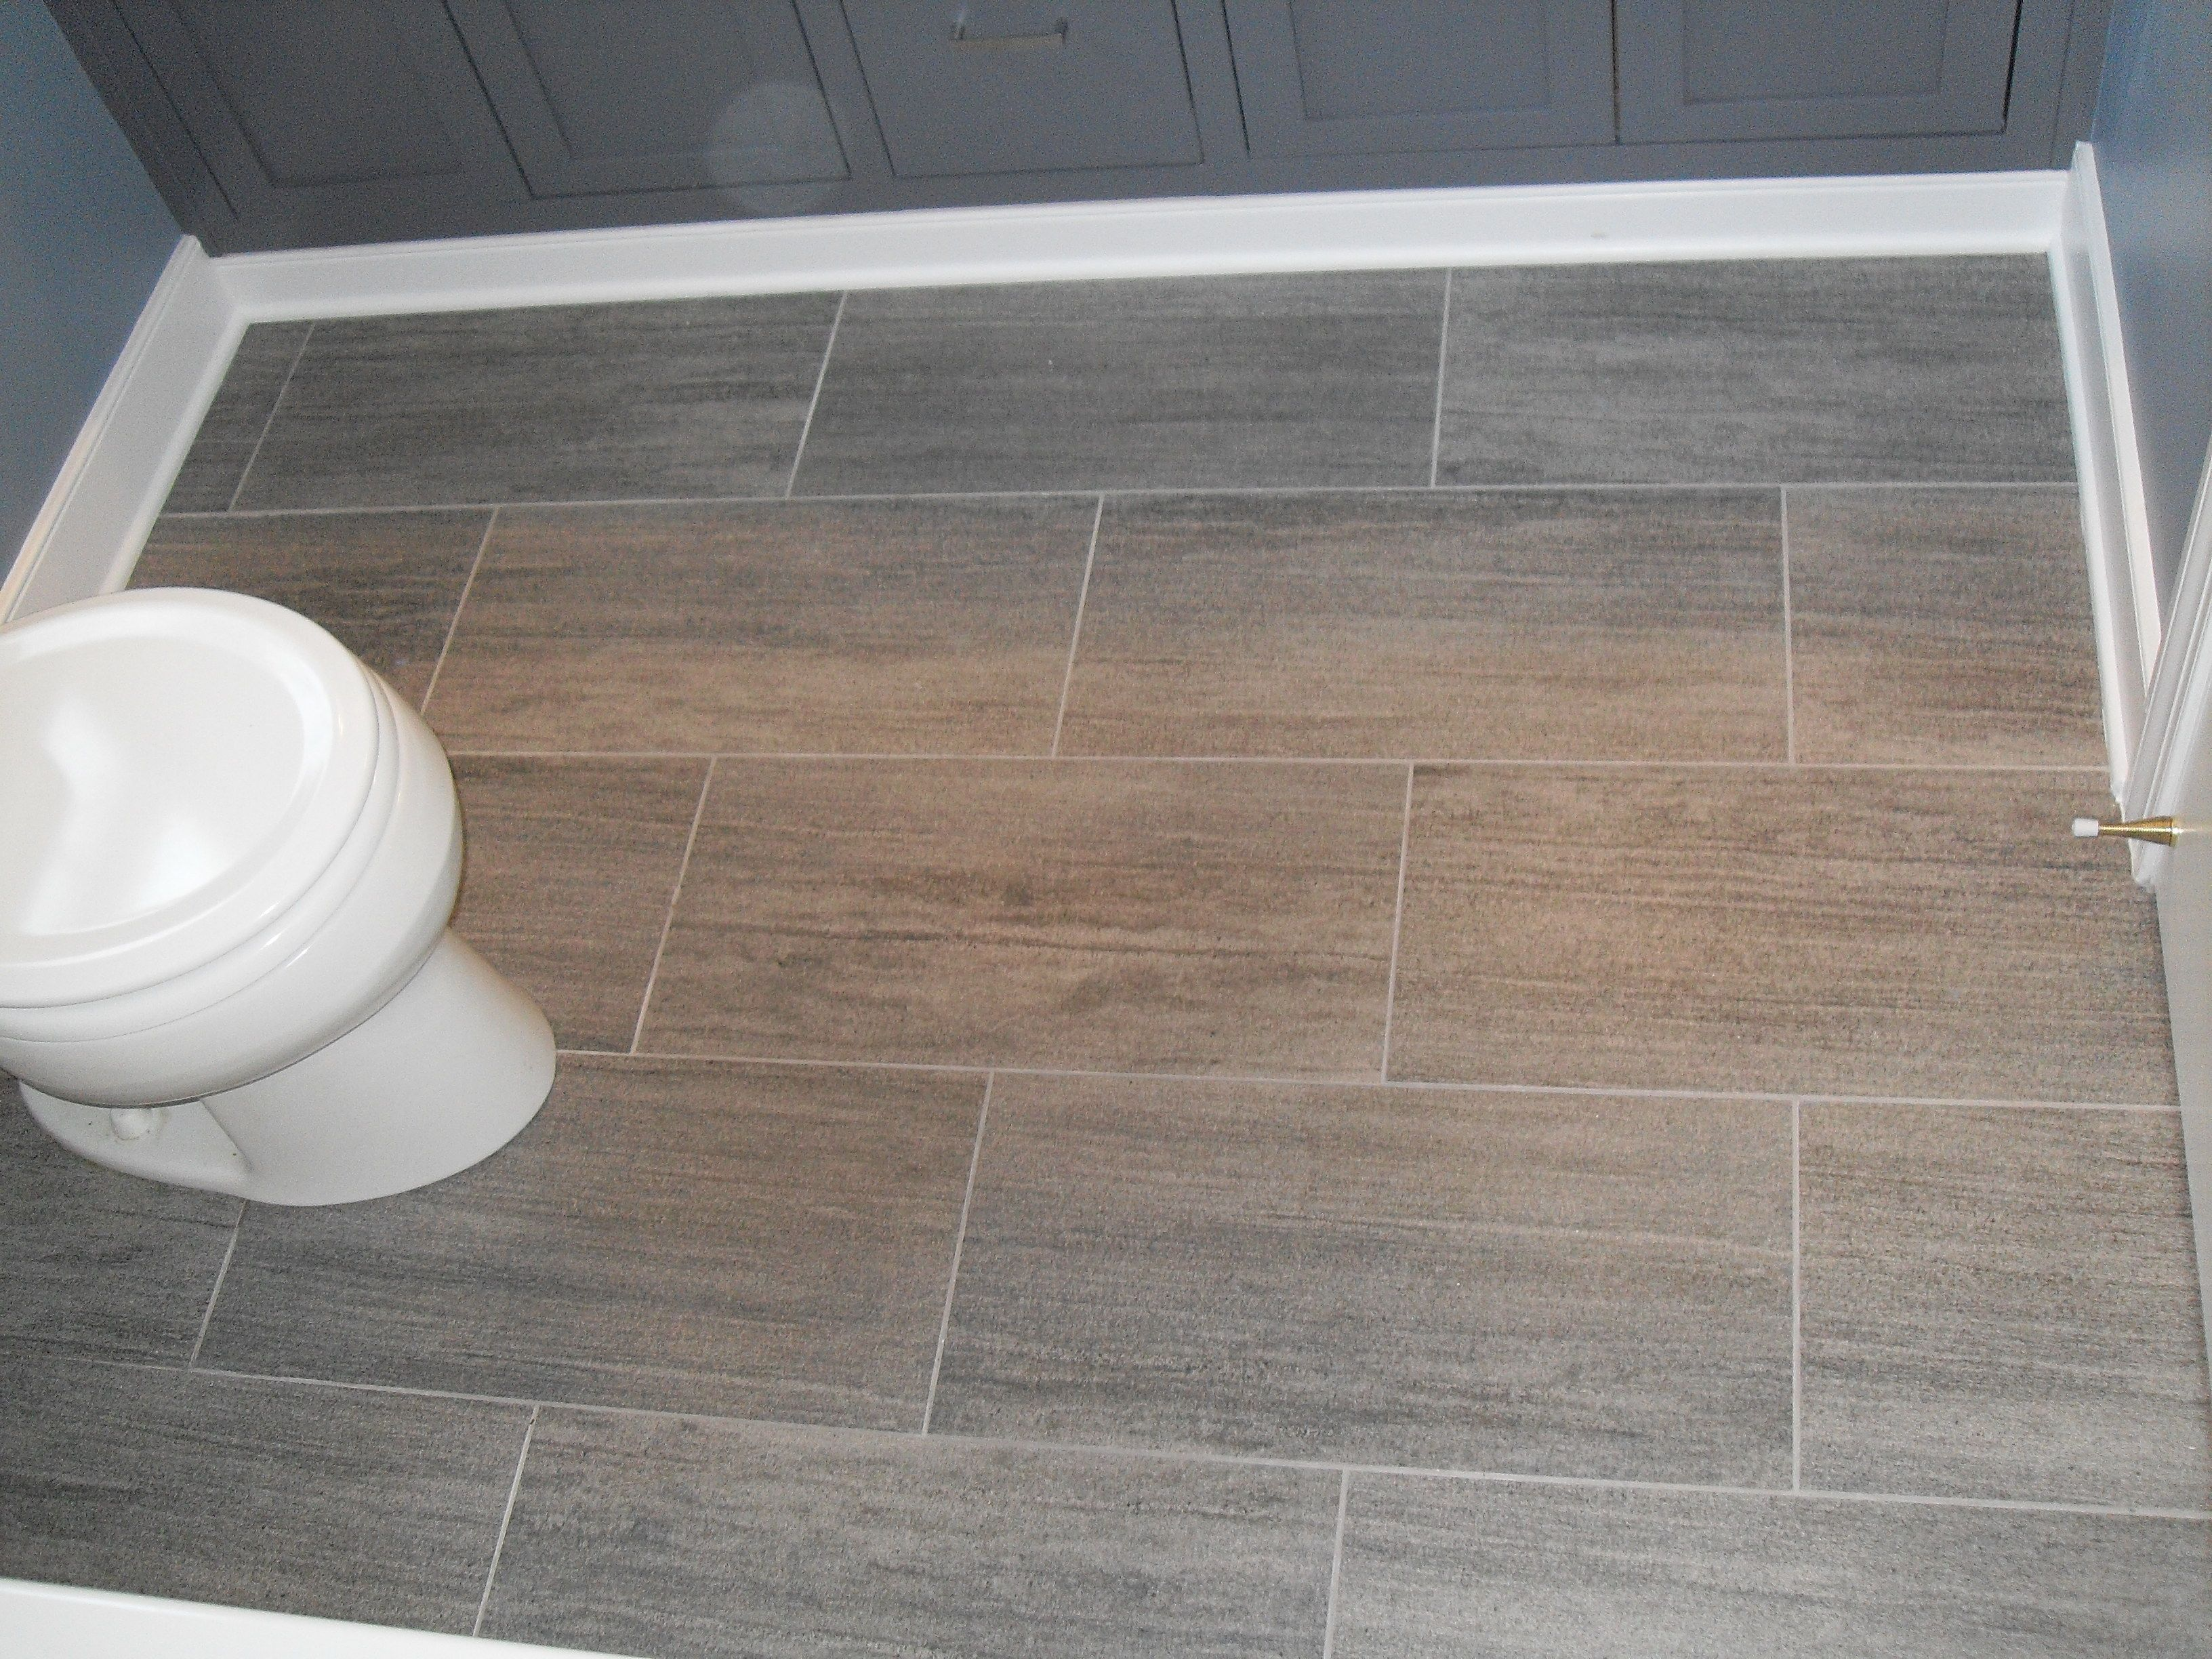 for daltile plans cheap glazed flooring grigio in perla homes bathroom floor salerno tiles x tile ceramic